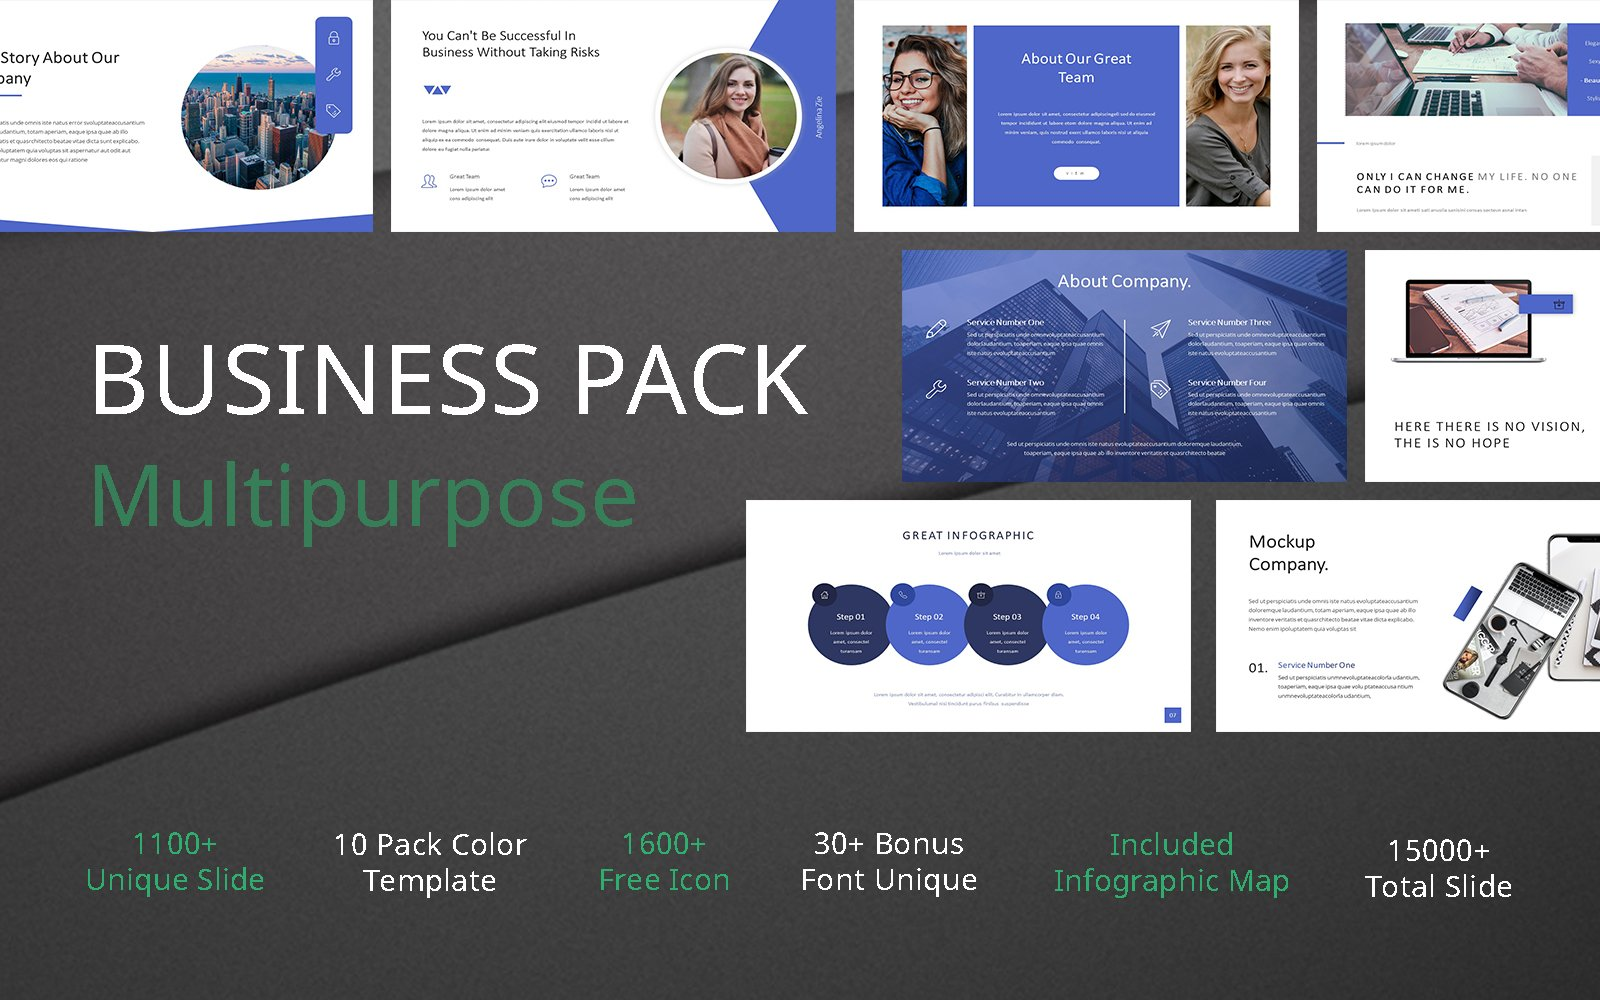 Business Pack Multipurpose PowerPoint Template